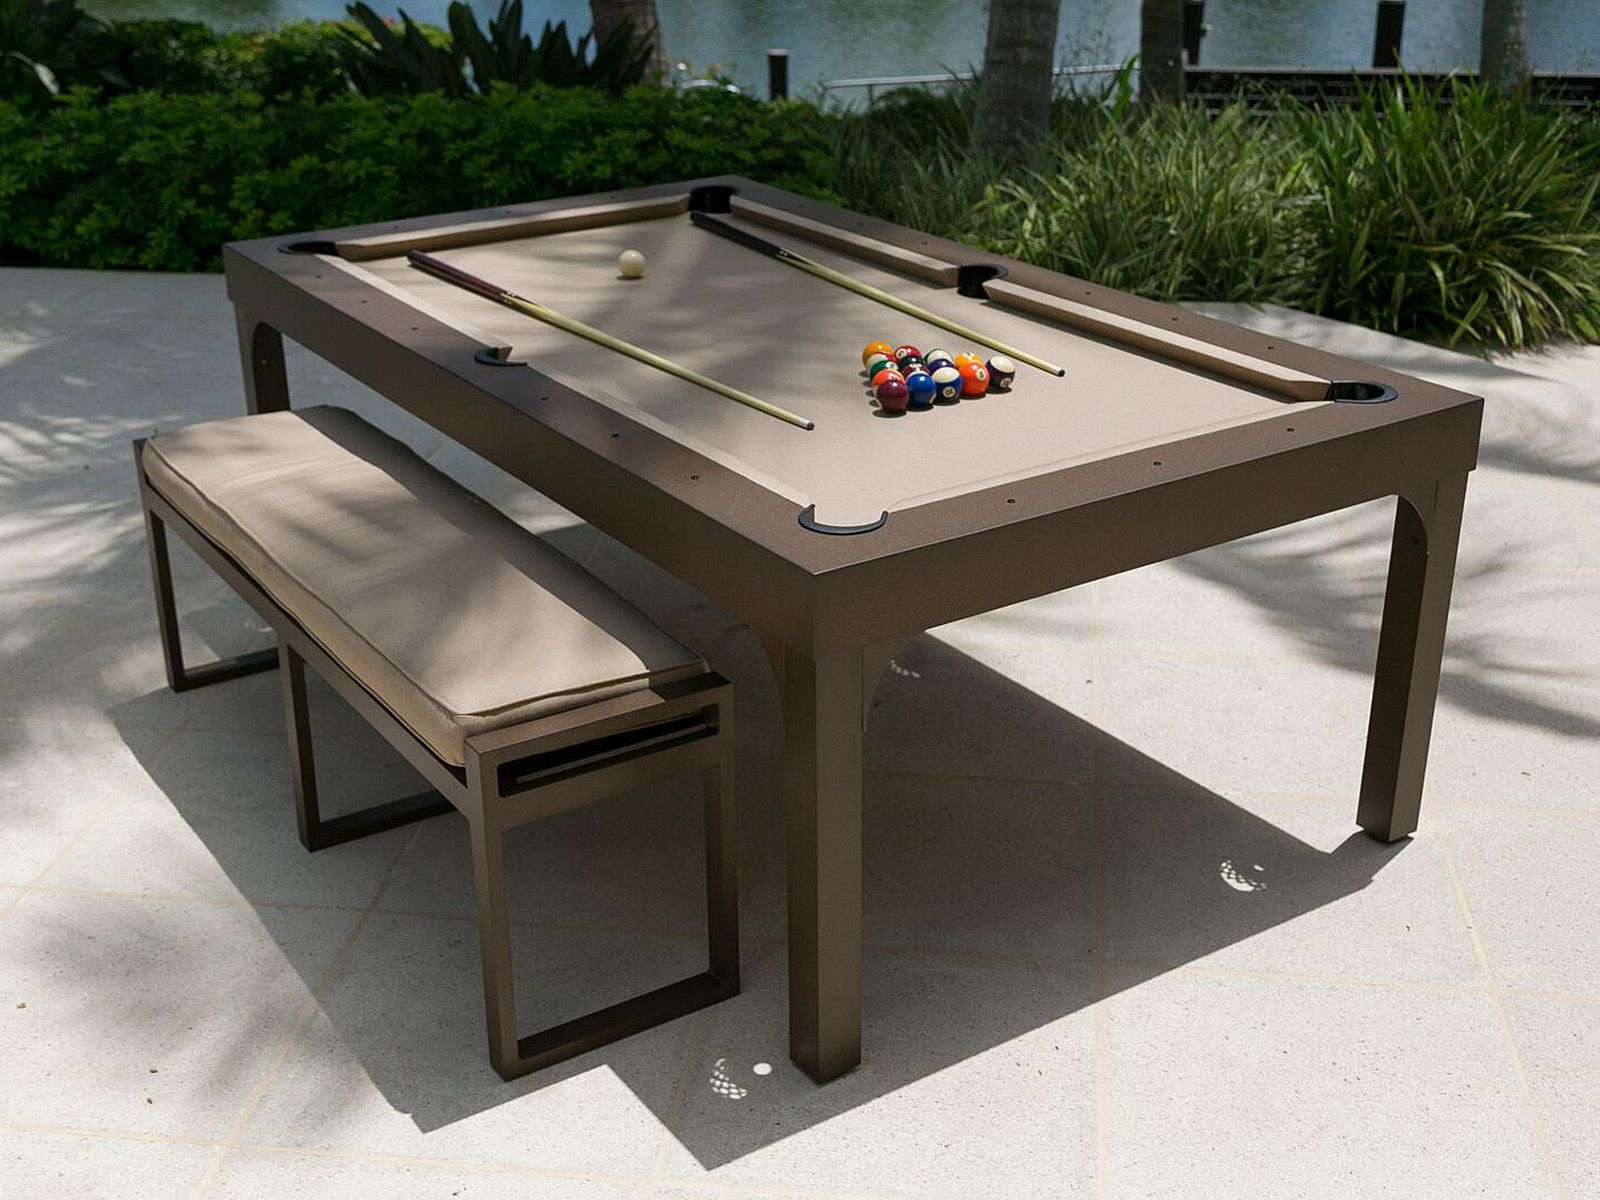 The Balcony Outdoor Pool Table For Home In 2019